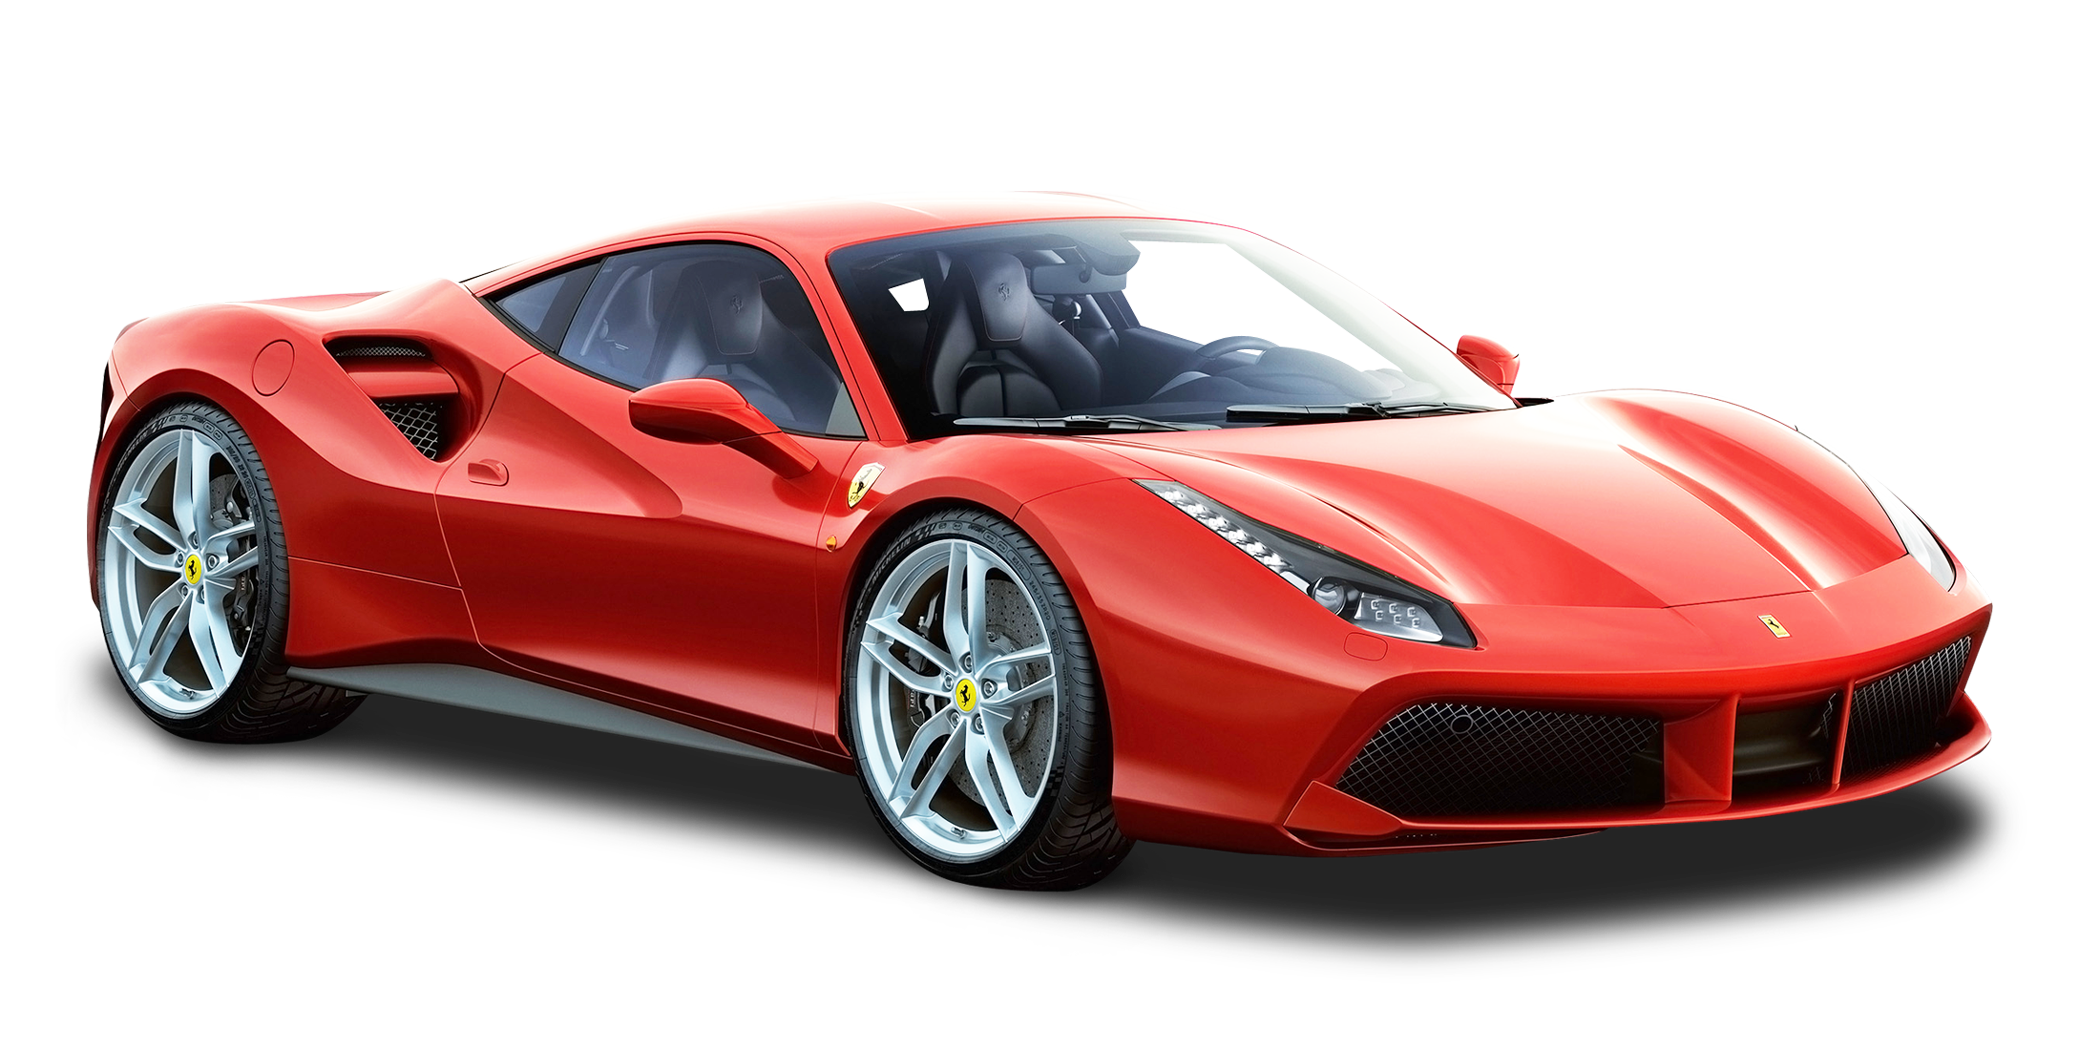 red ferrari 488 gtb car png image purepng free. Black Bedroom Furniture Sets. Home Design Ideas